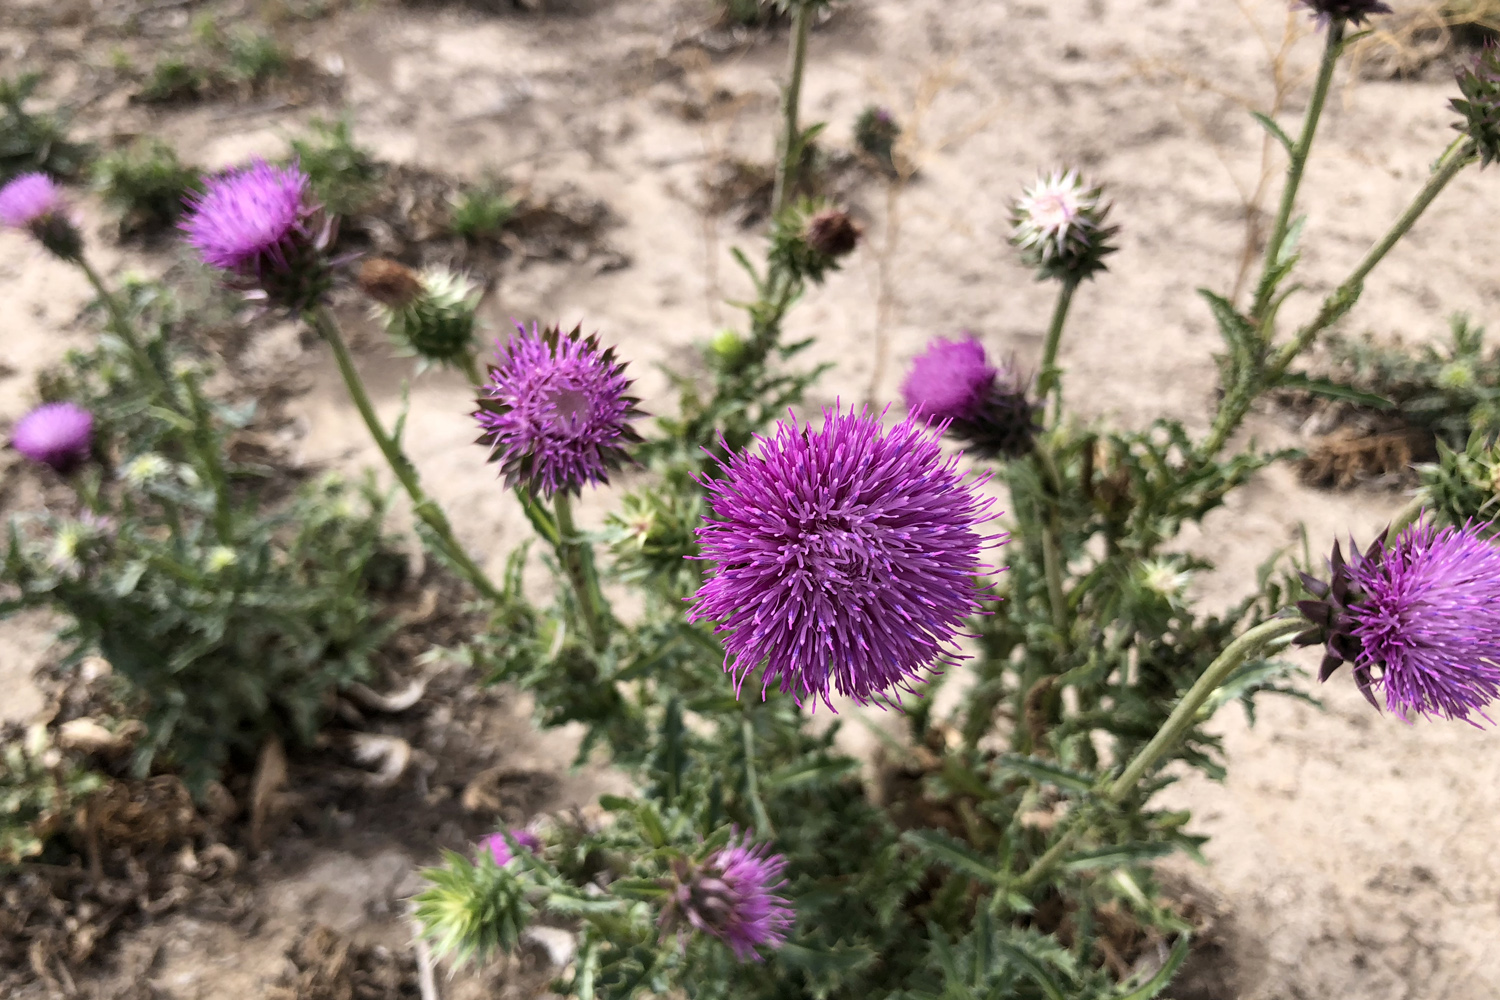 Musk Thistle IMG_2430 1500 x 1000